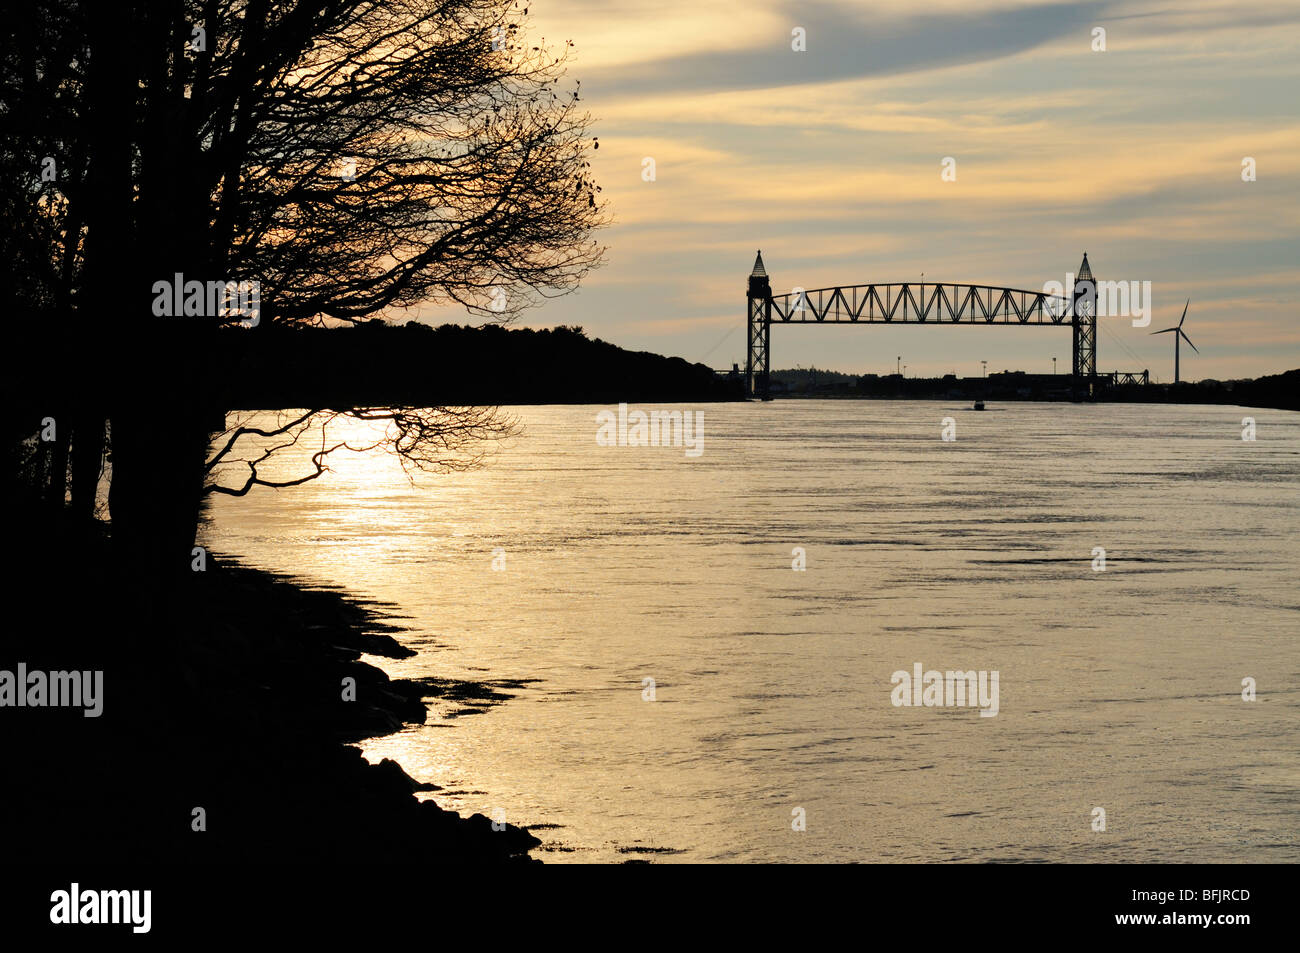 Sunset at the Cape Cod Canal with Railroad bridge in Bourne, Massachusetts USA - Stock Image